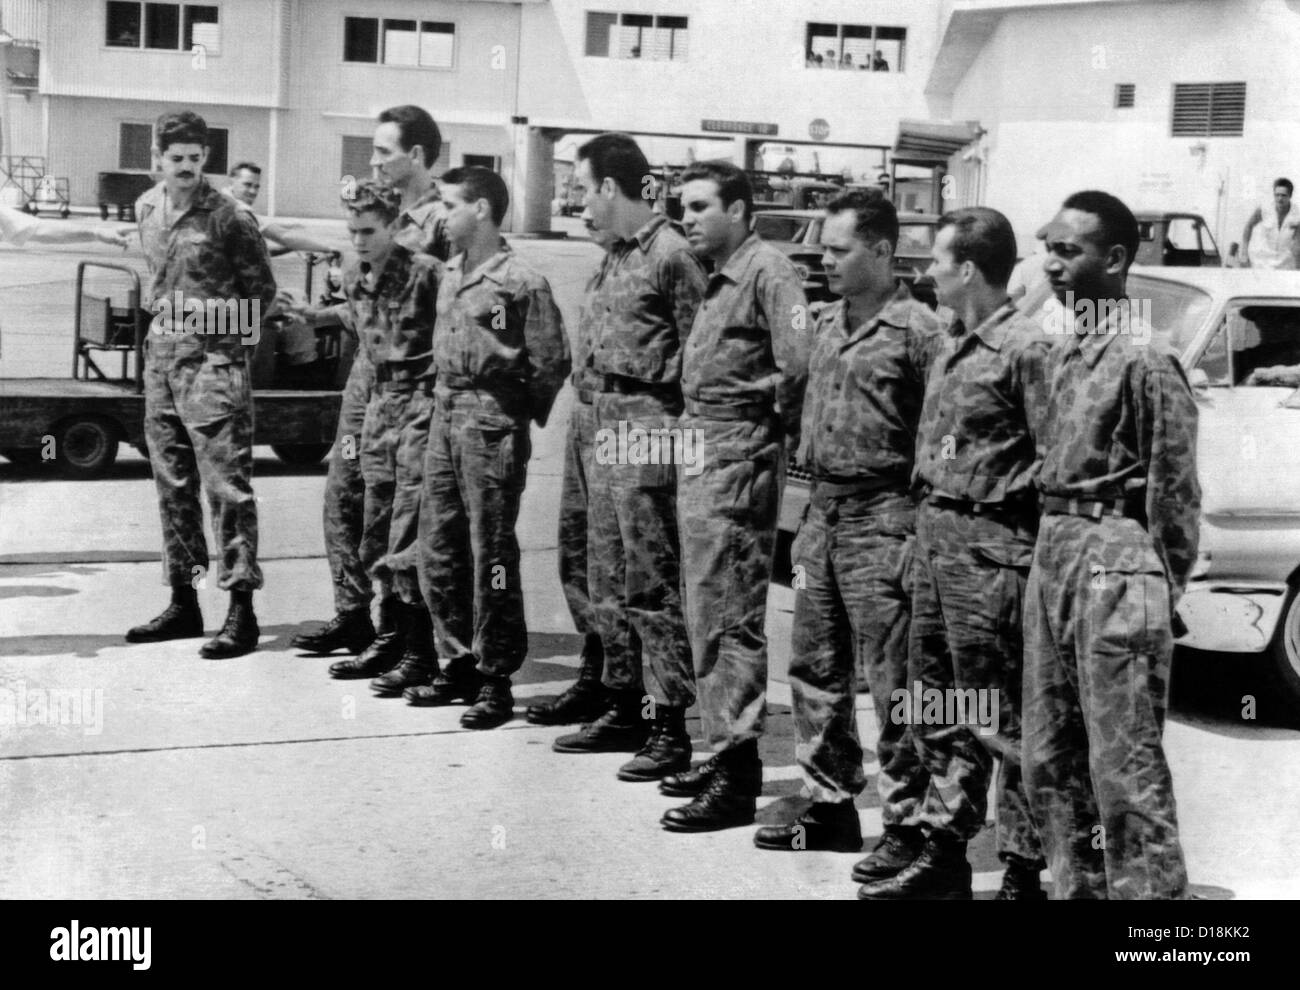 a history of the bay of pigs invasion The bay is historically important for the failed bay of pigs invasion of 1961 former cuban president fidel castro owned a private island with twenty mansions, a.